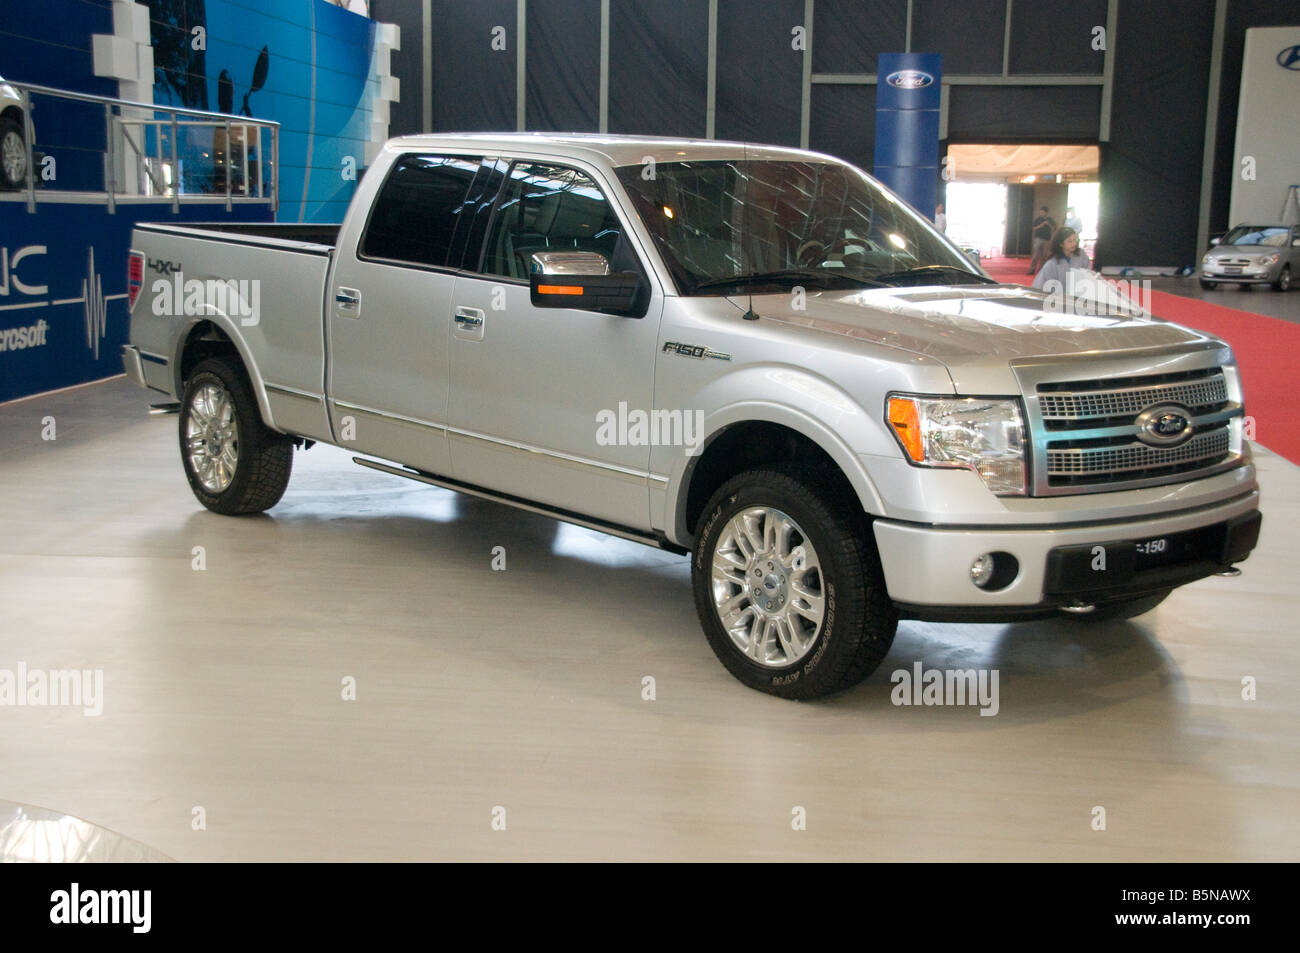 Ford F-150 Truck 2009 model - Stock Image